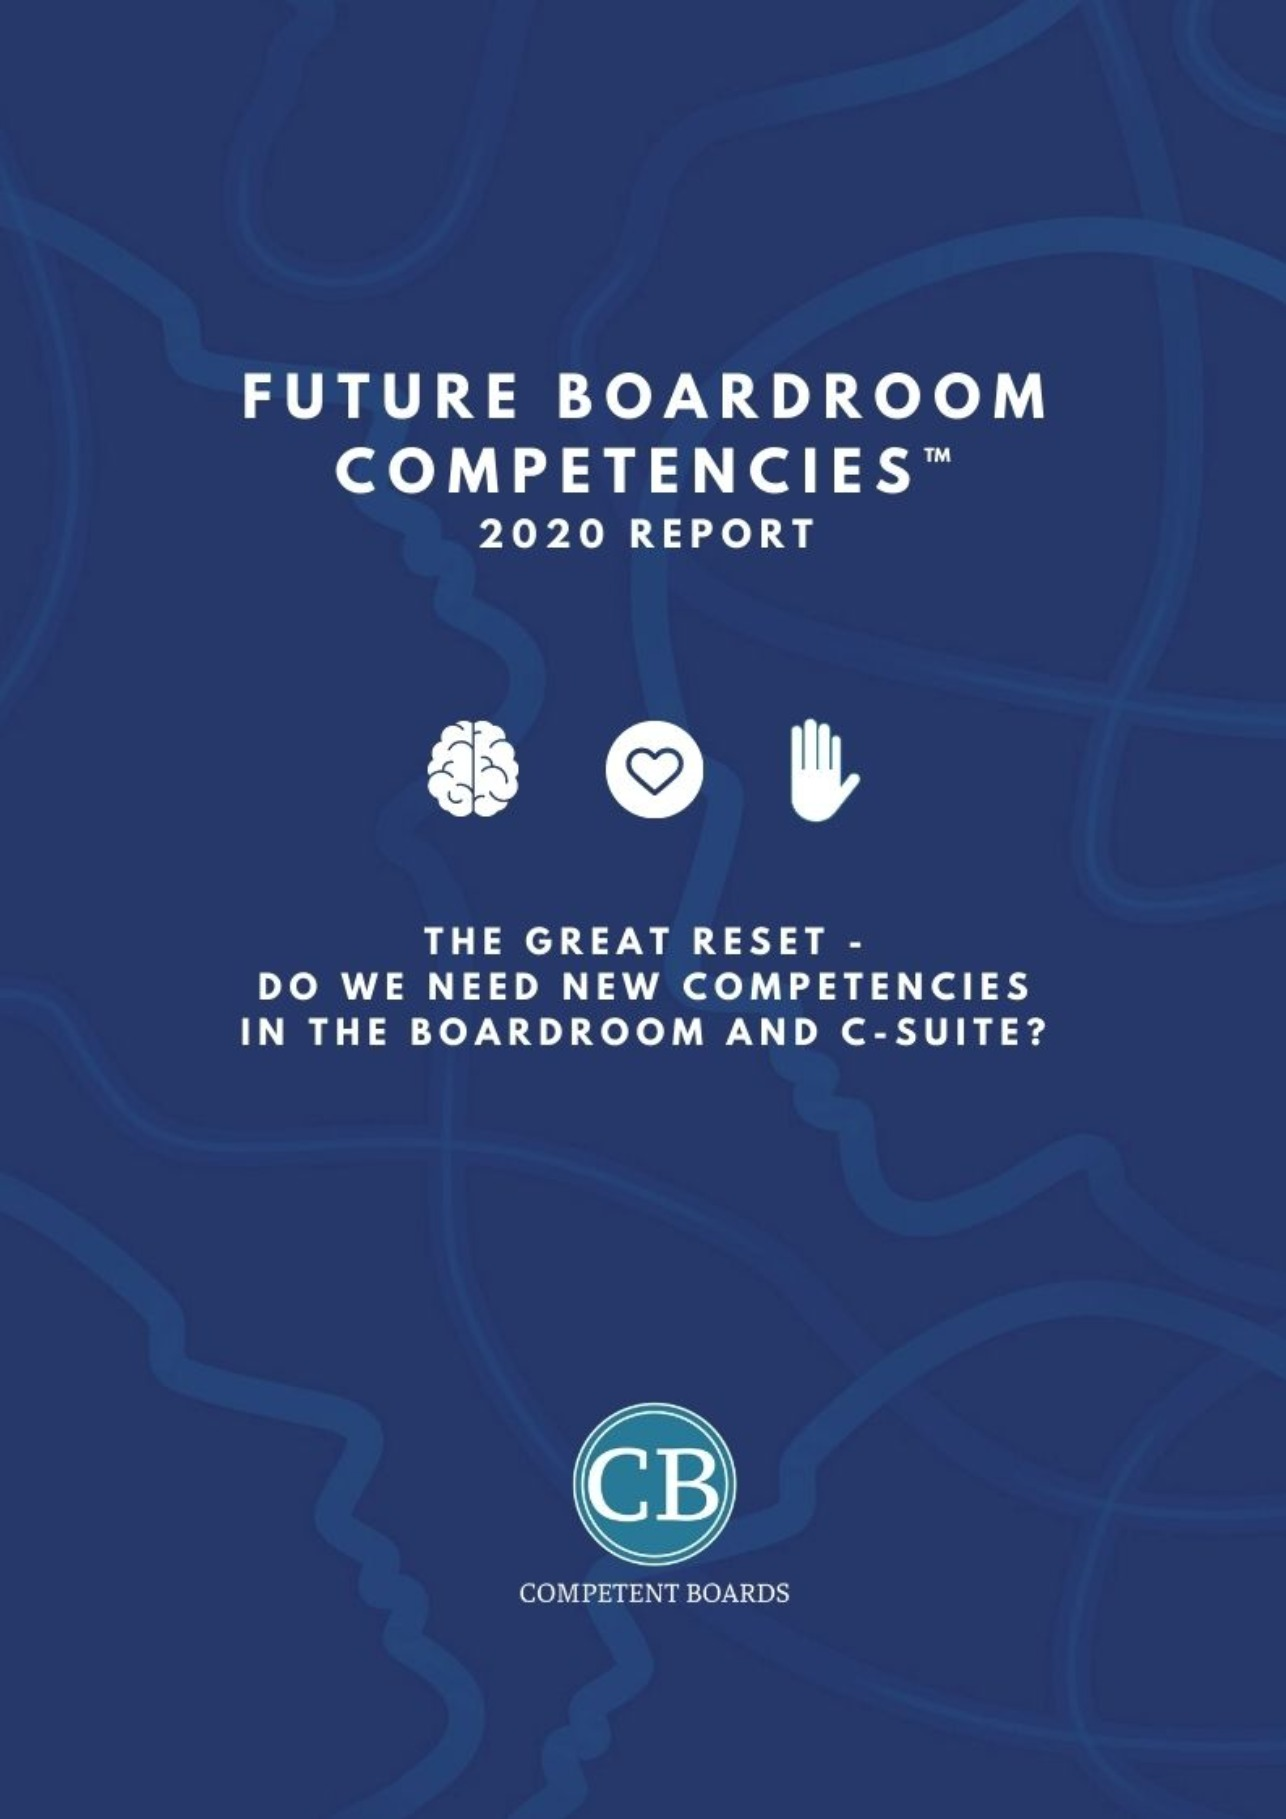 Future Boardroom Competencies | 2020 Report